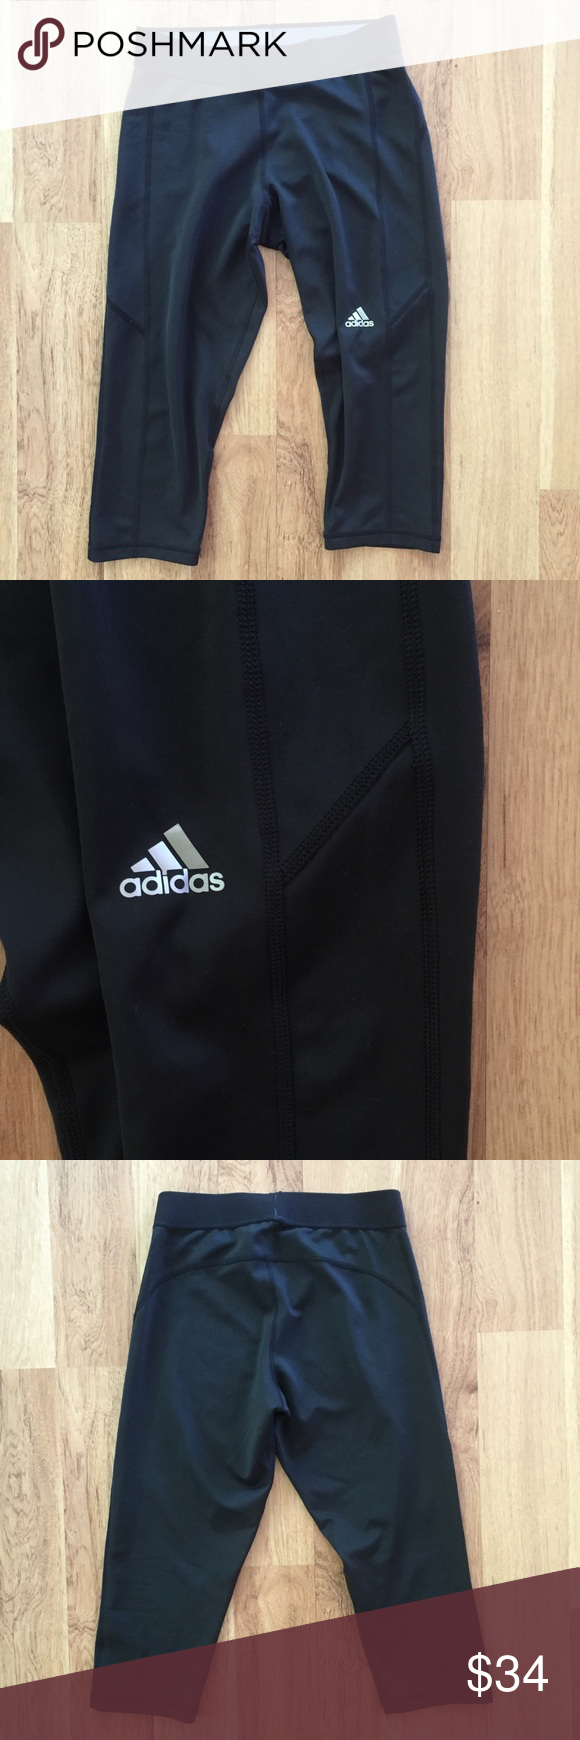 Black Adidas crop leggings and compression pants Good condition, as seen in pictures! Fast same or next day shipping! Open to offers but I don't negotiate in the comments so please use the offer button Adidas Pants Leggings